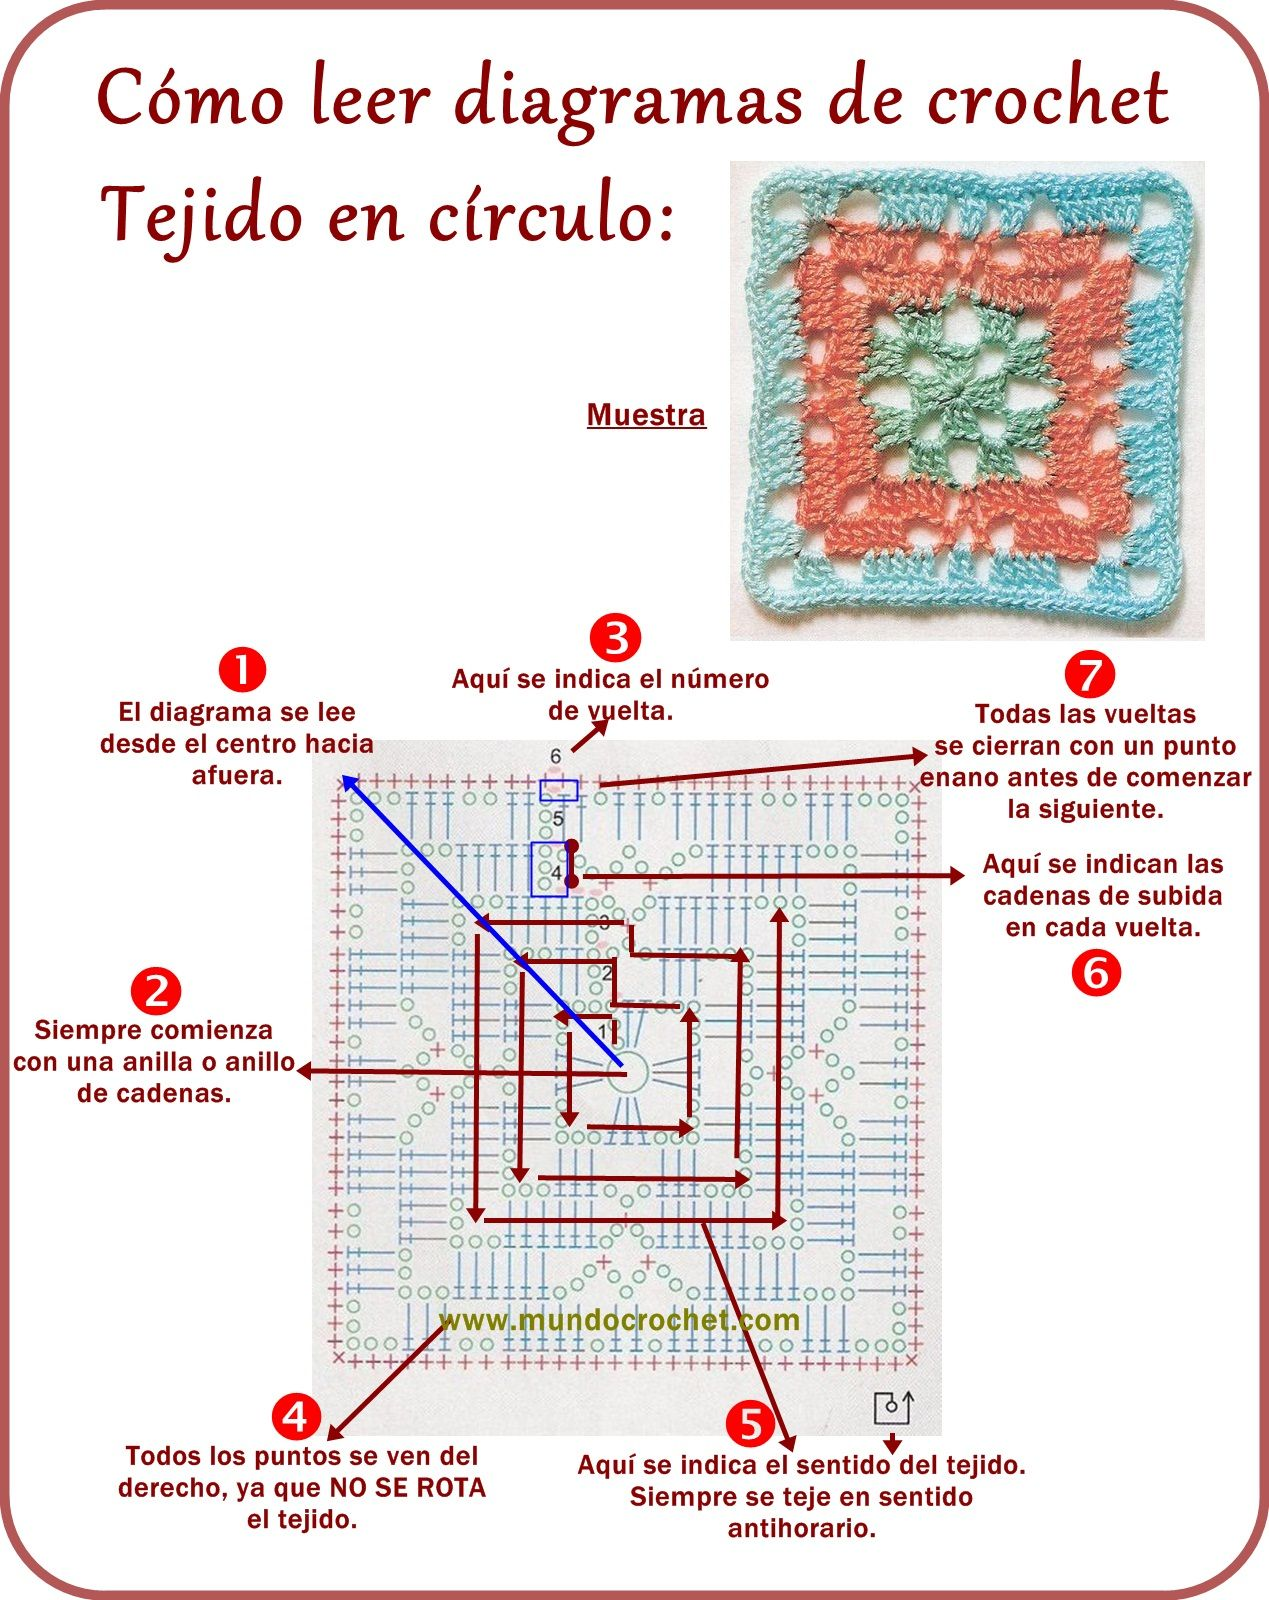 Leer diagramas crochet - Reading crochet diagrams - крючком диаграмм ...